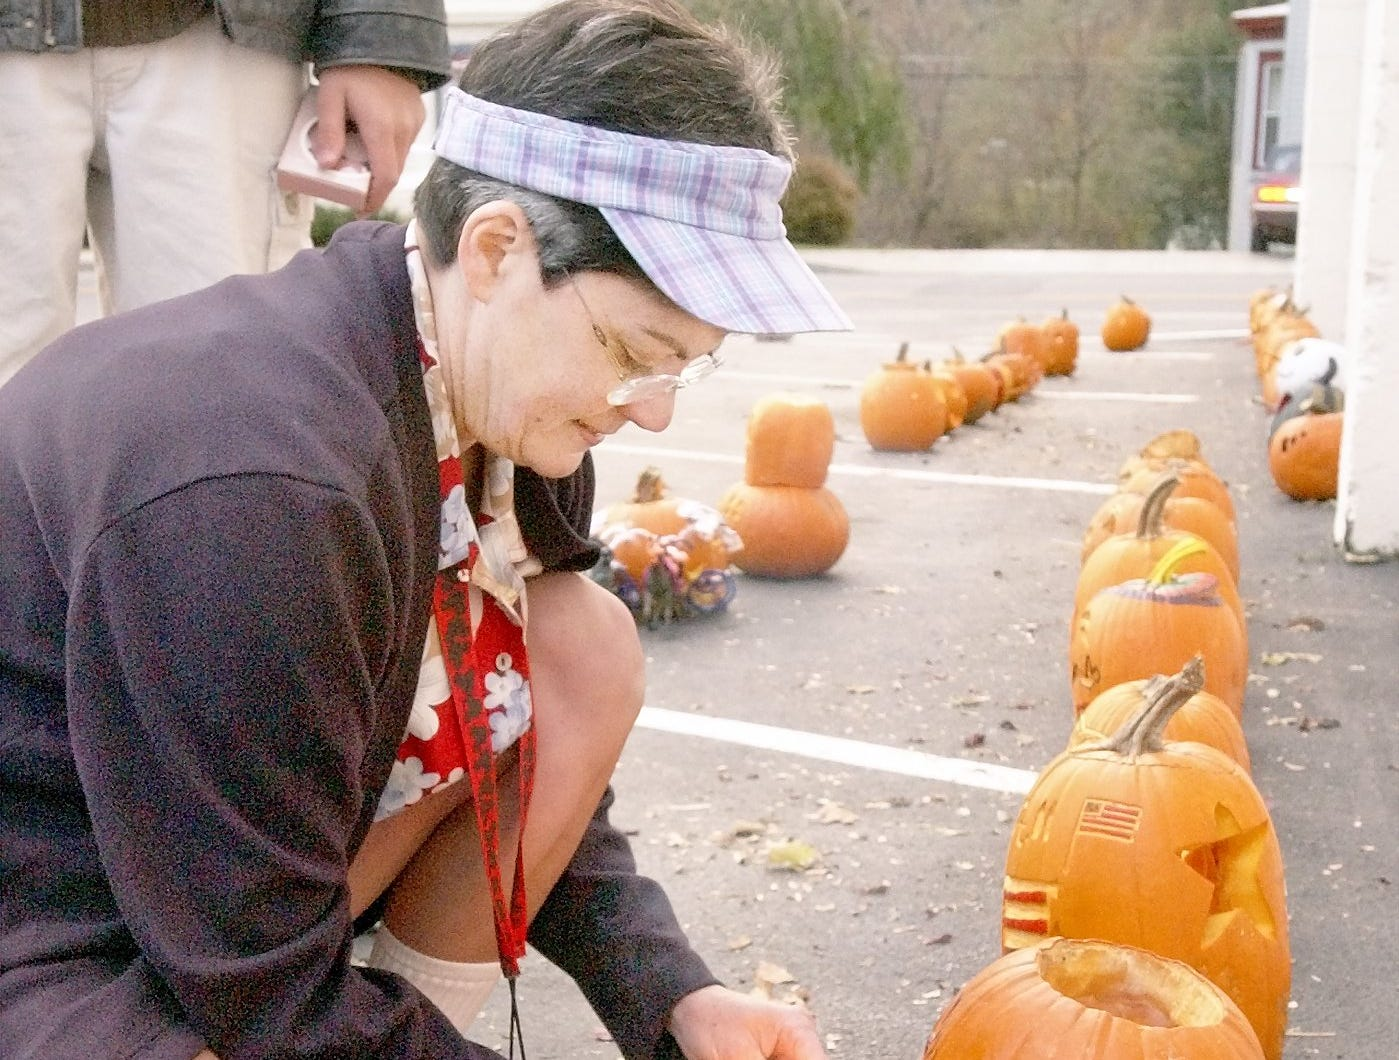 2002: Christy Walpole of Walpole's Liquor Store in Groton lights candles Thursday night to put inside the pumpkins entered in the annual Halloween Pumpkin Carving/Decorating Contest. Pumpkin decorations included a horse-drawn pumpkin carriage and a carving featuring Swiss cheese and a rat.